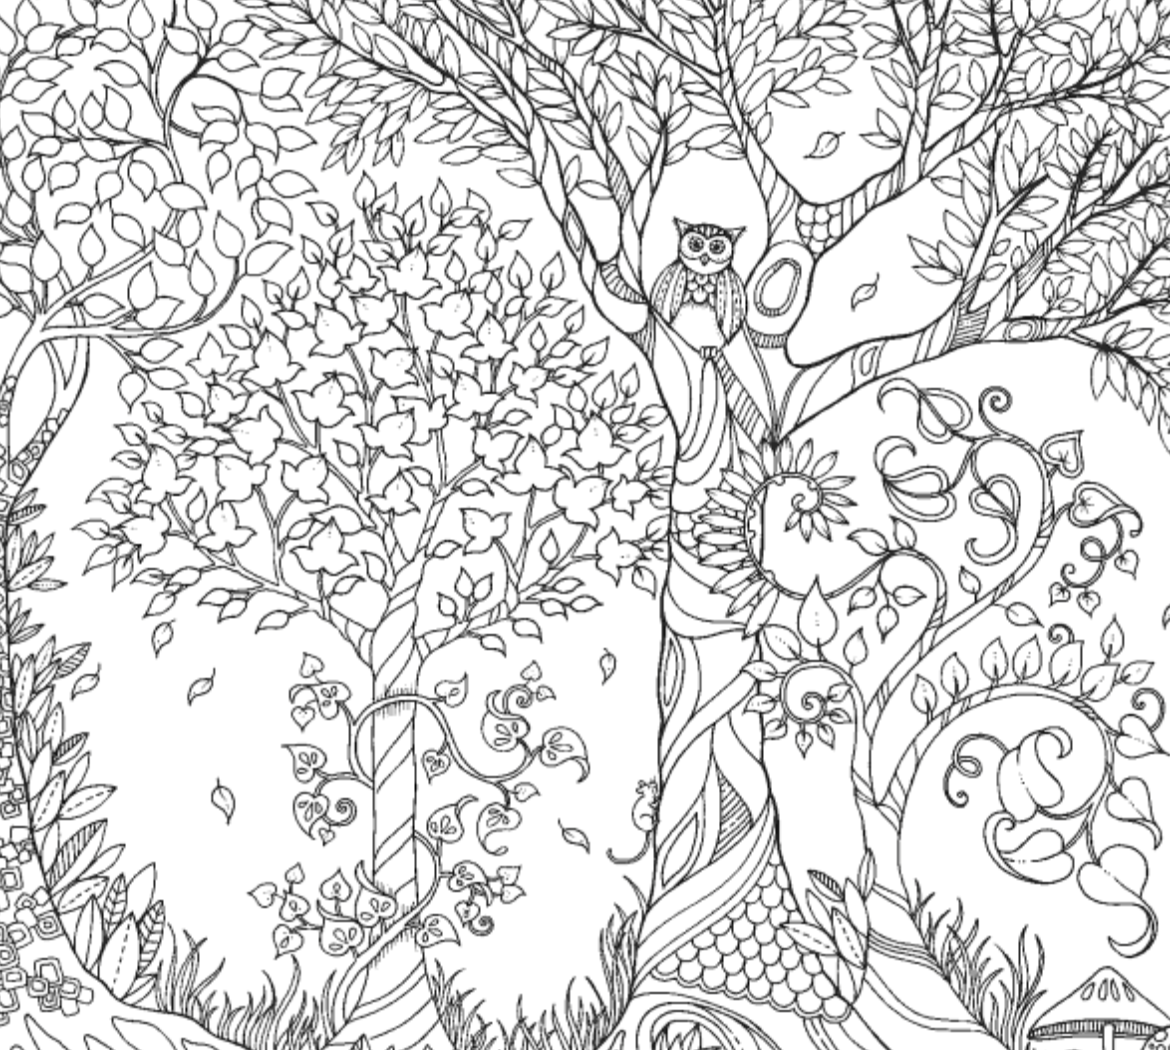 The secret garden coloring book review - So Now It S Those Colouring Books At The Top Of The Amazon Best Seller List Wow Za Wow Za Wow Za You Know It S Pretty Clear That Civilisation Gradually